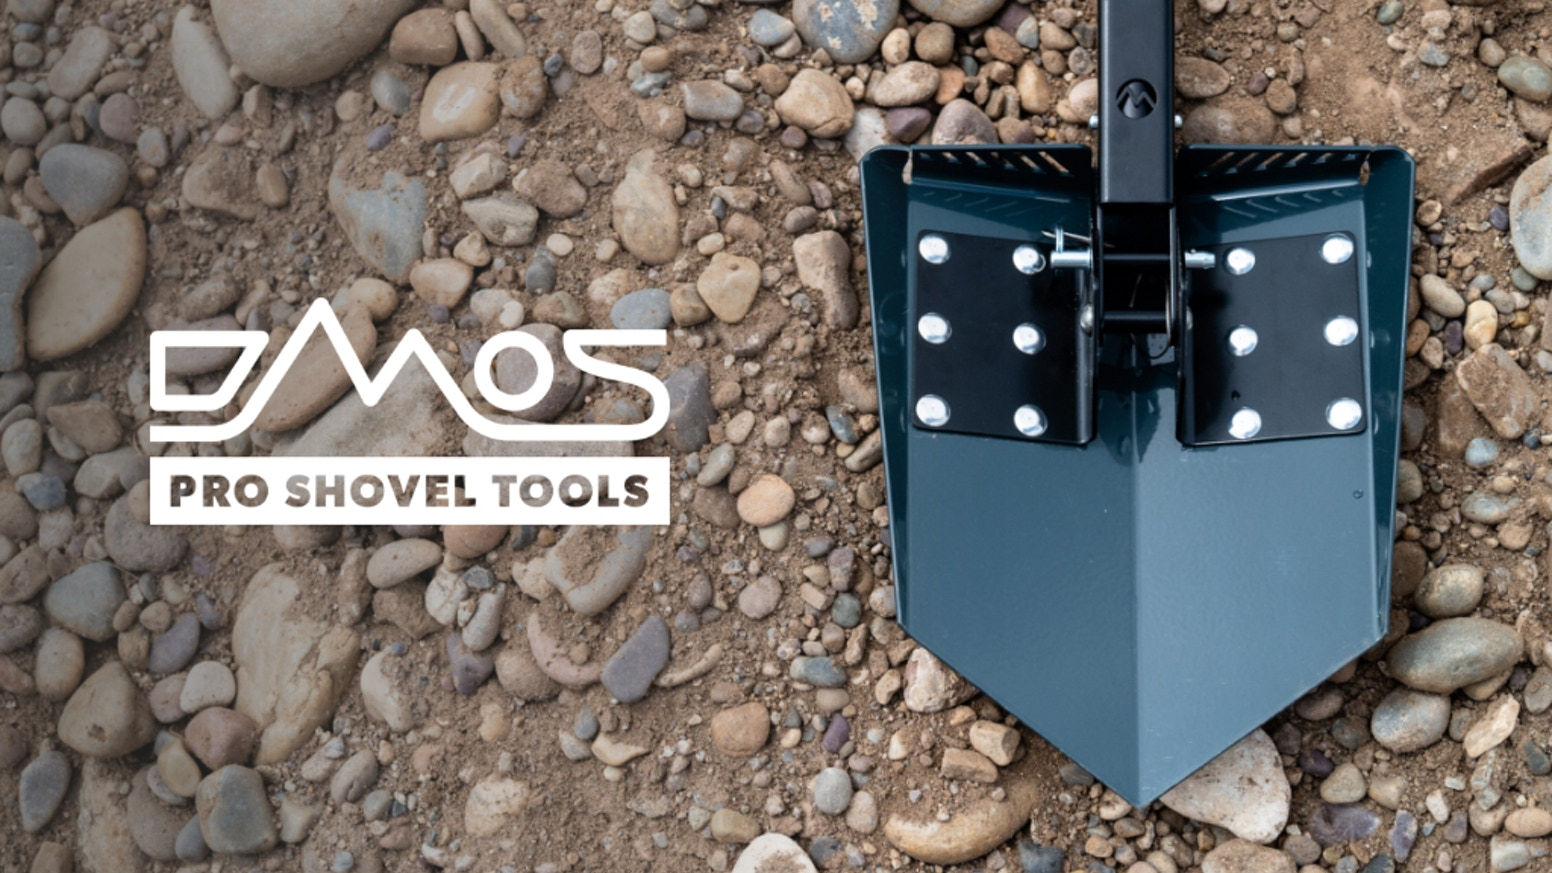 Full-sized. Fully collapsible. American Made from Premium Materials. This is THE shovel for all your adventures.